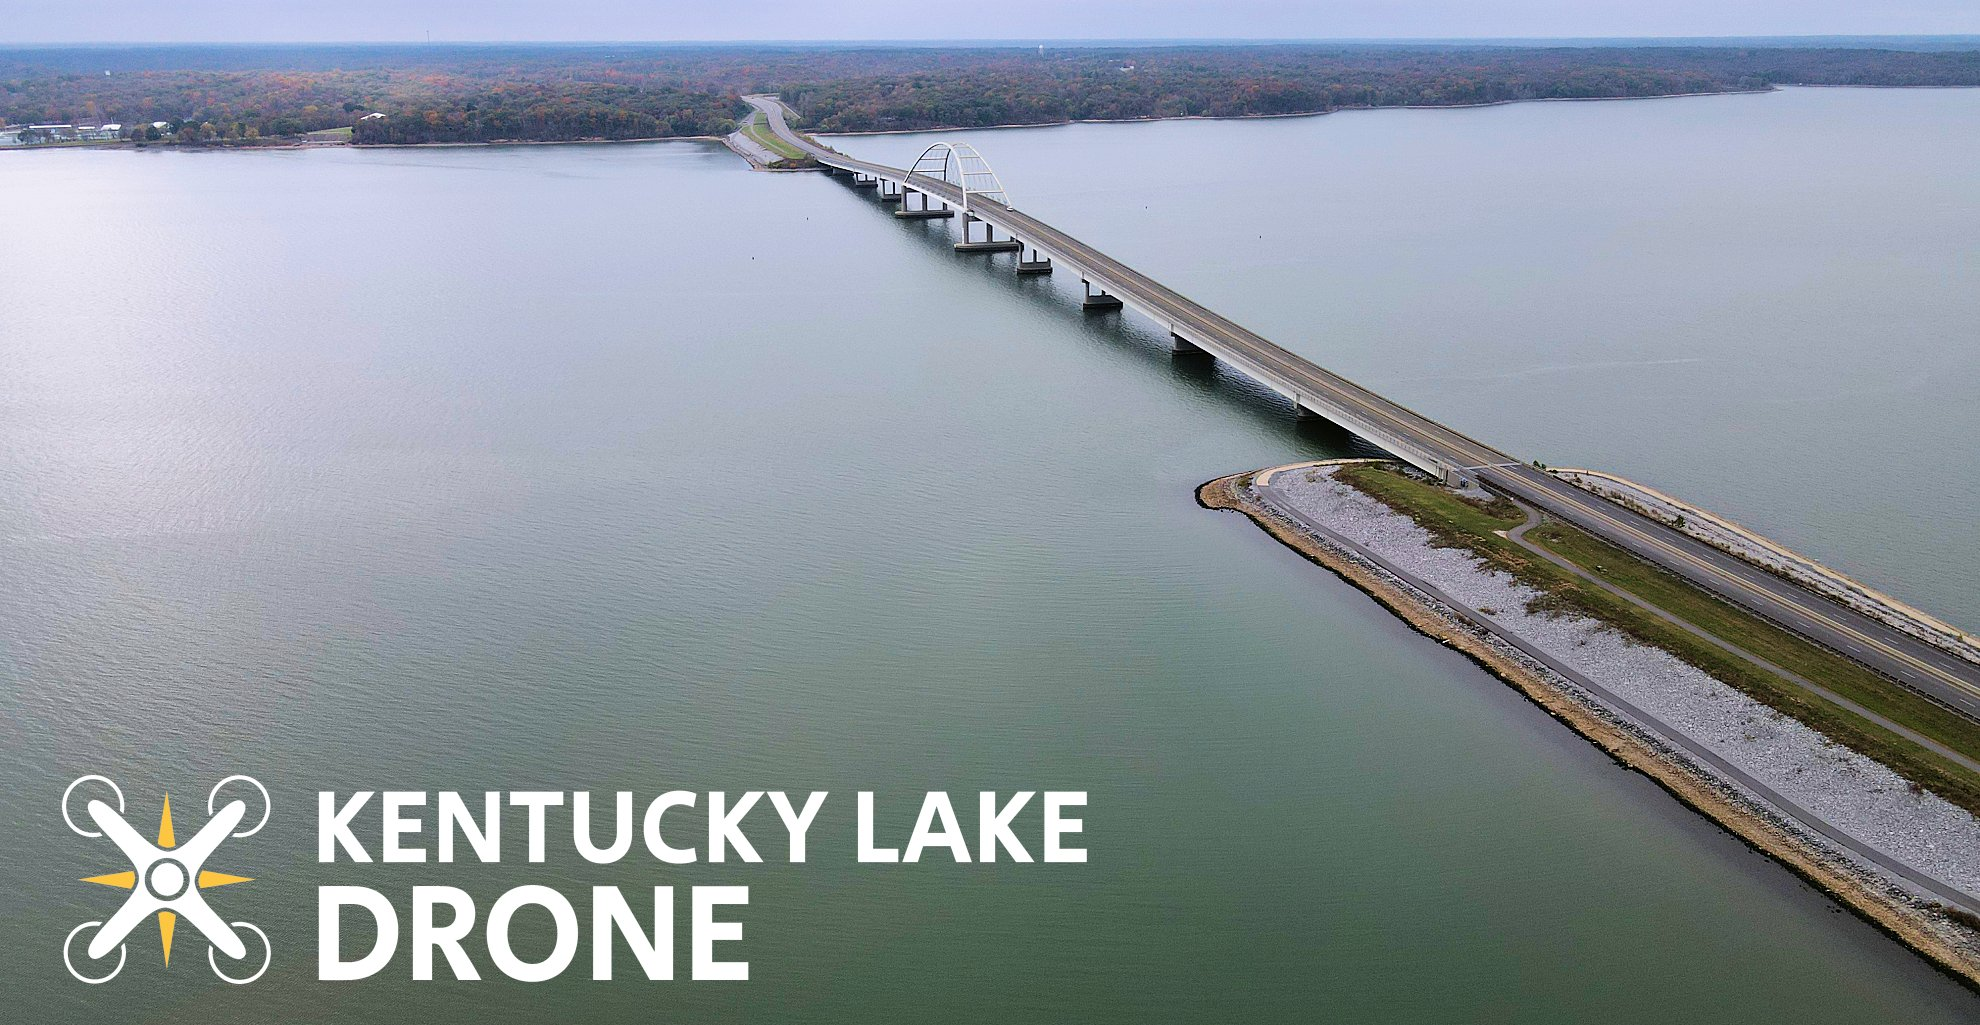 Kentucky Lake Drone